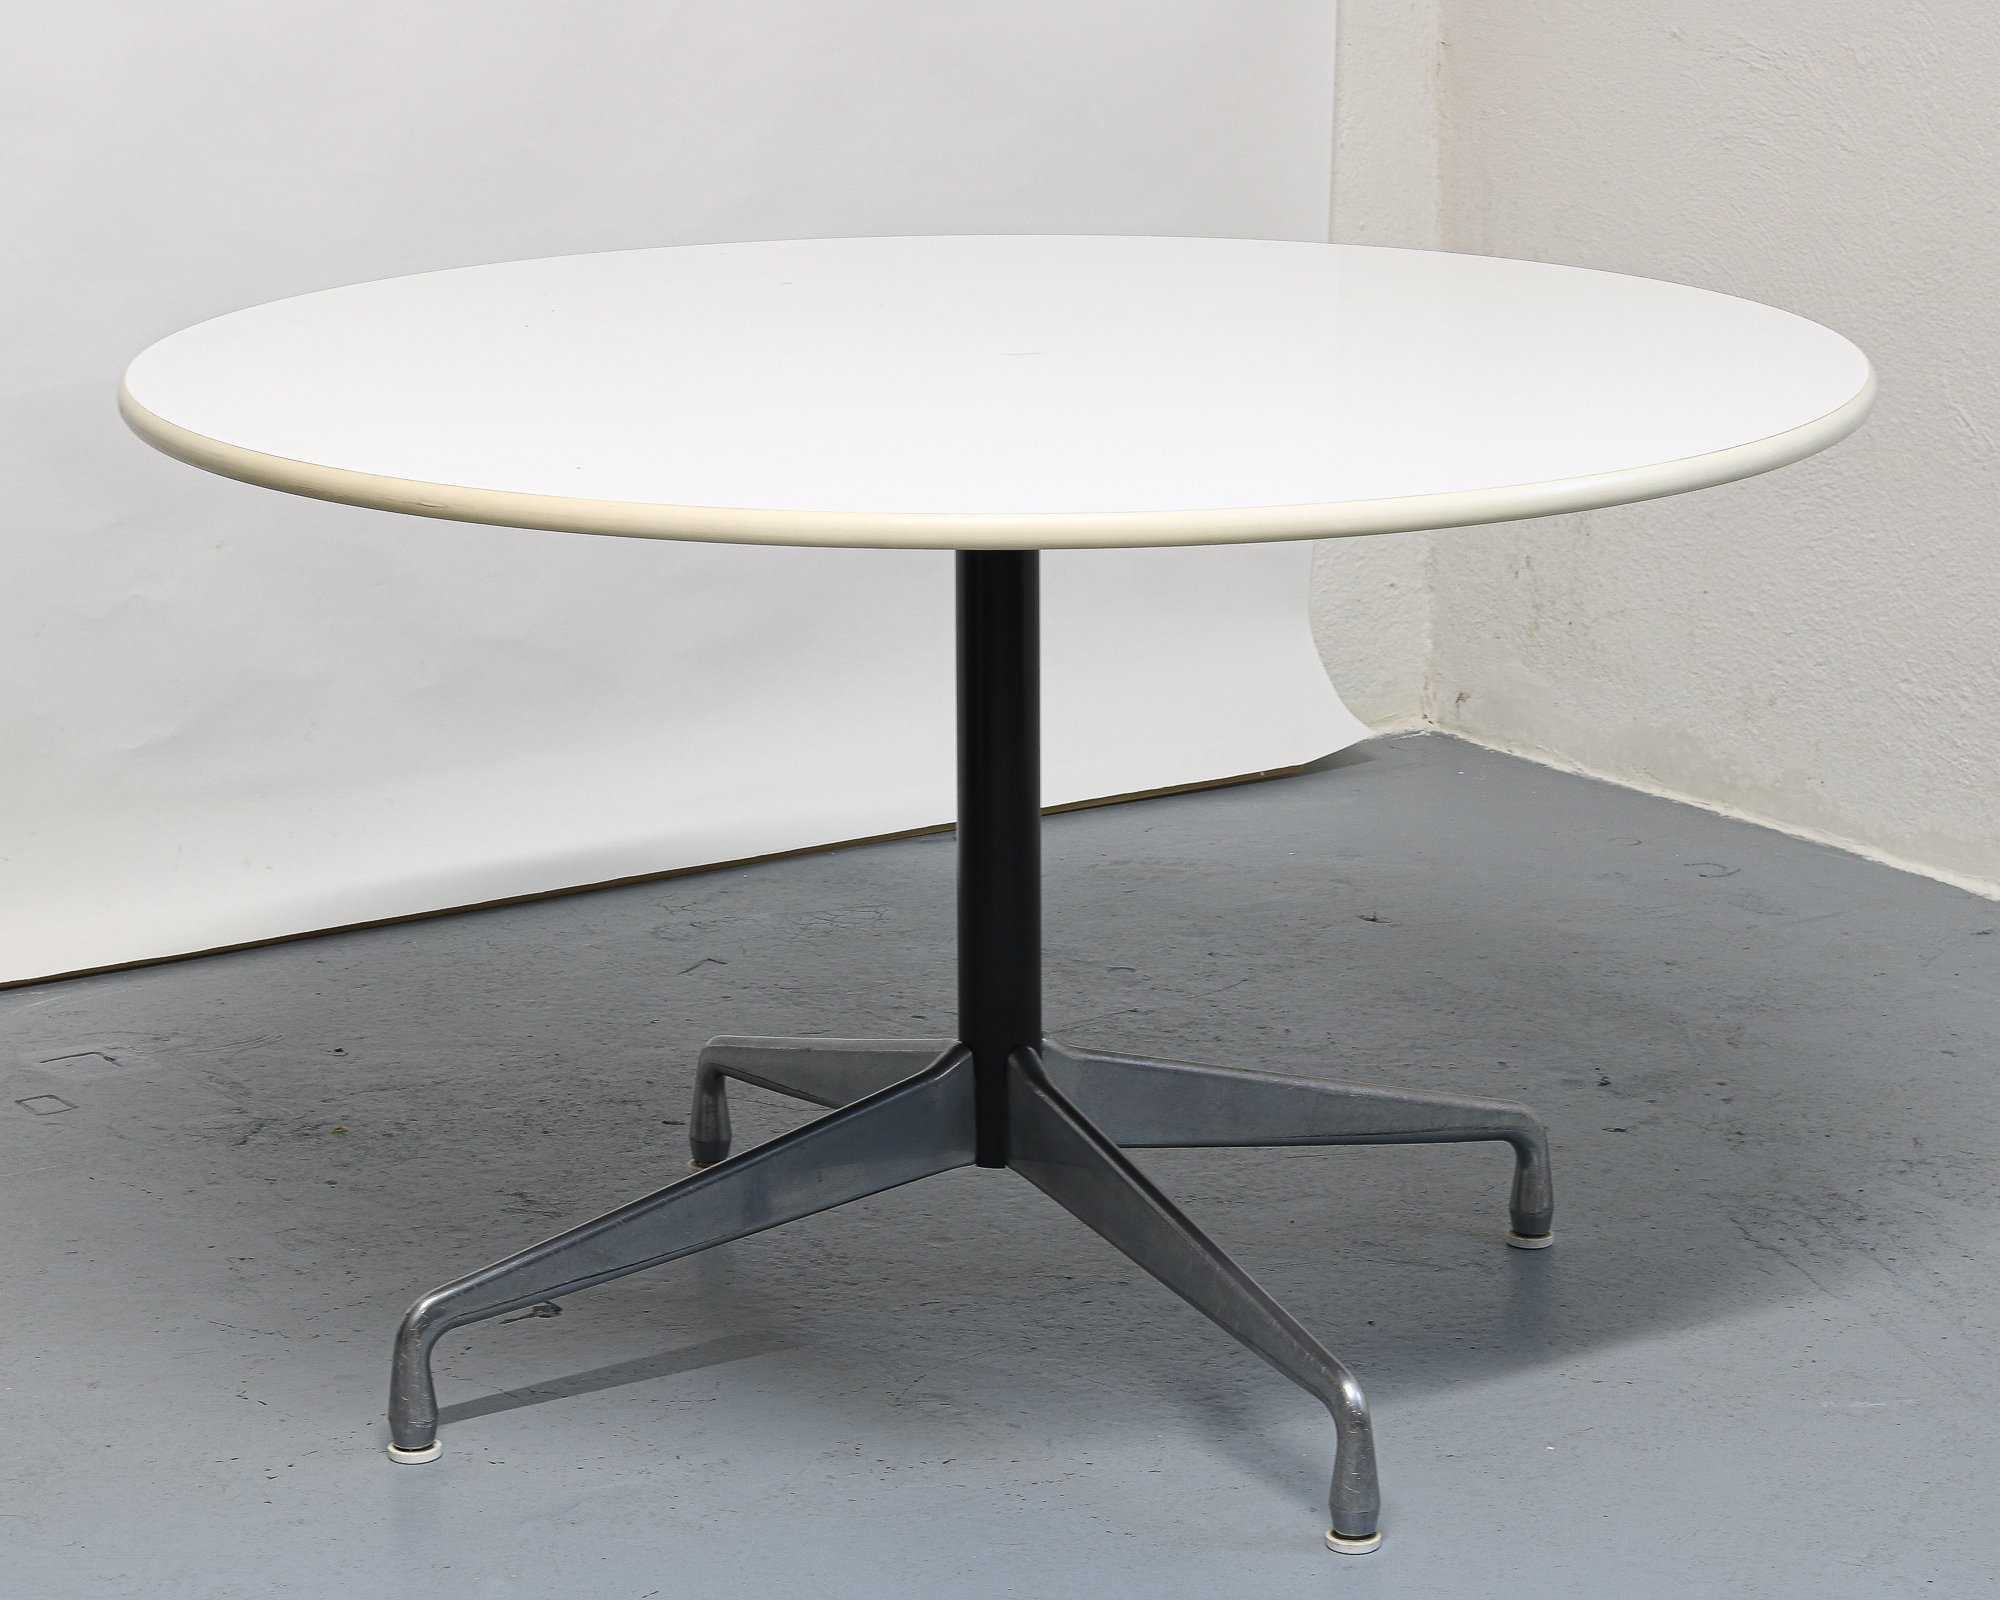 Dining Table By Charles Ray Eames For, Herman Miller Dining Room Set